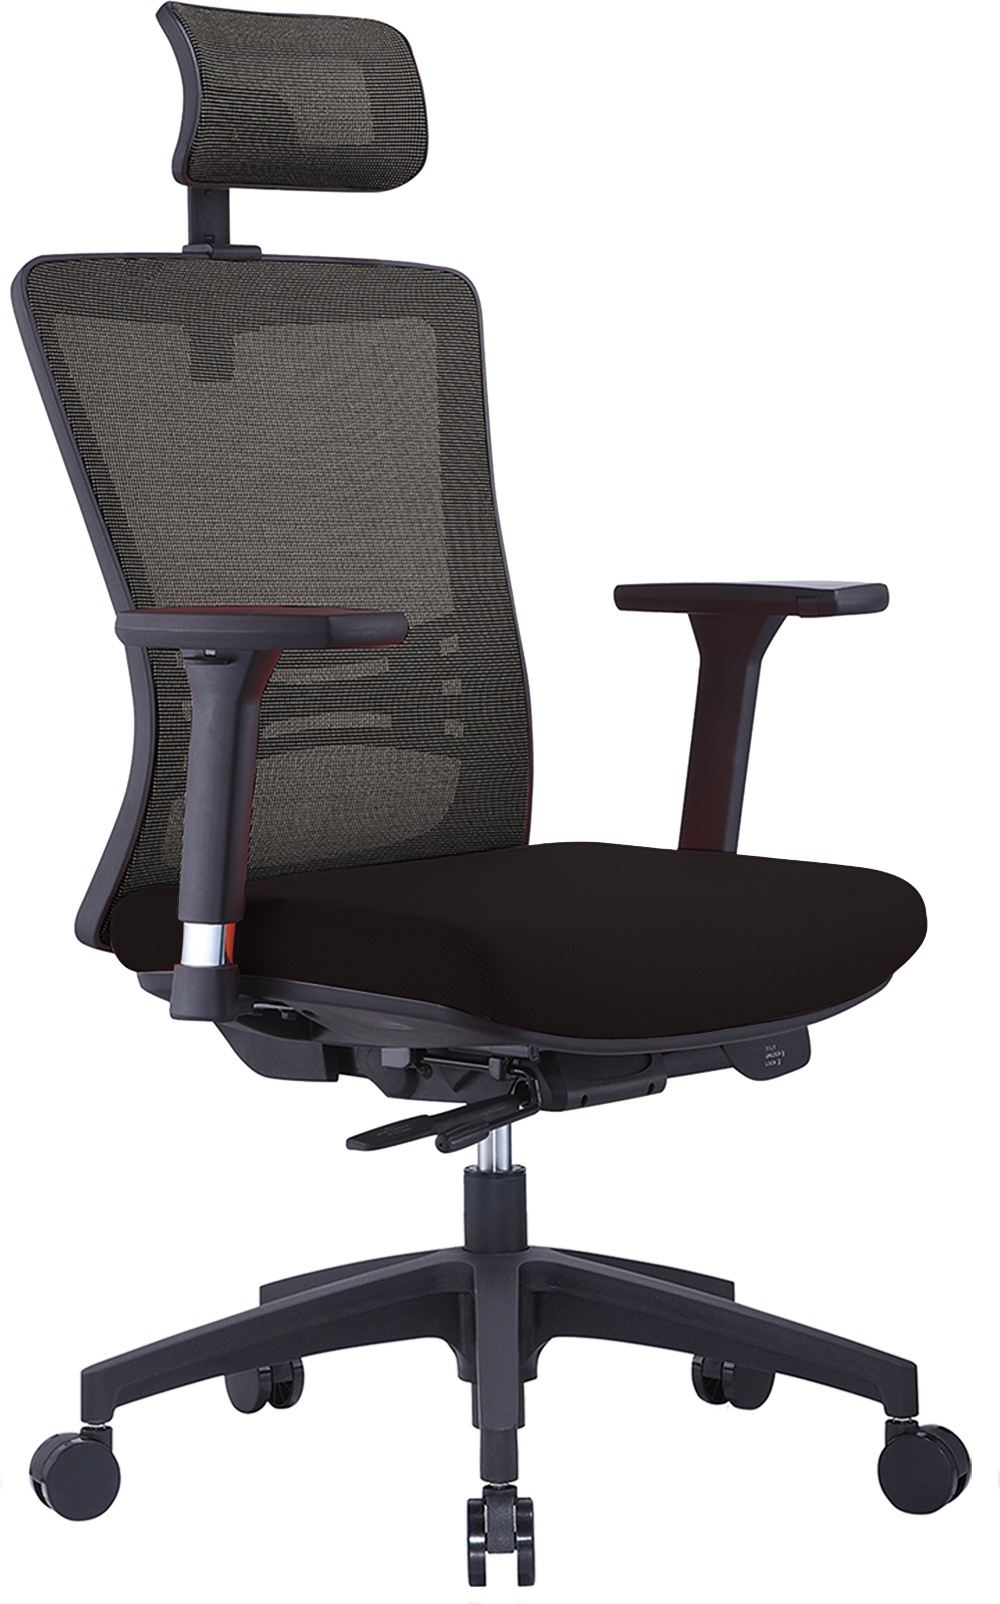 Ergonomic Chair Malaysia Supplier At Best Price